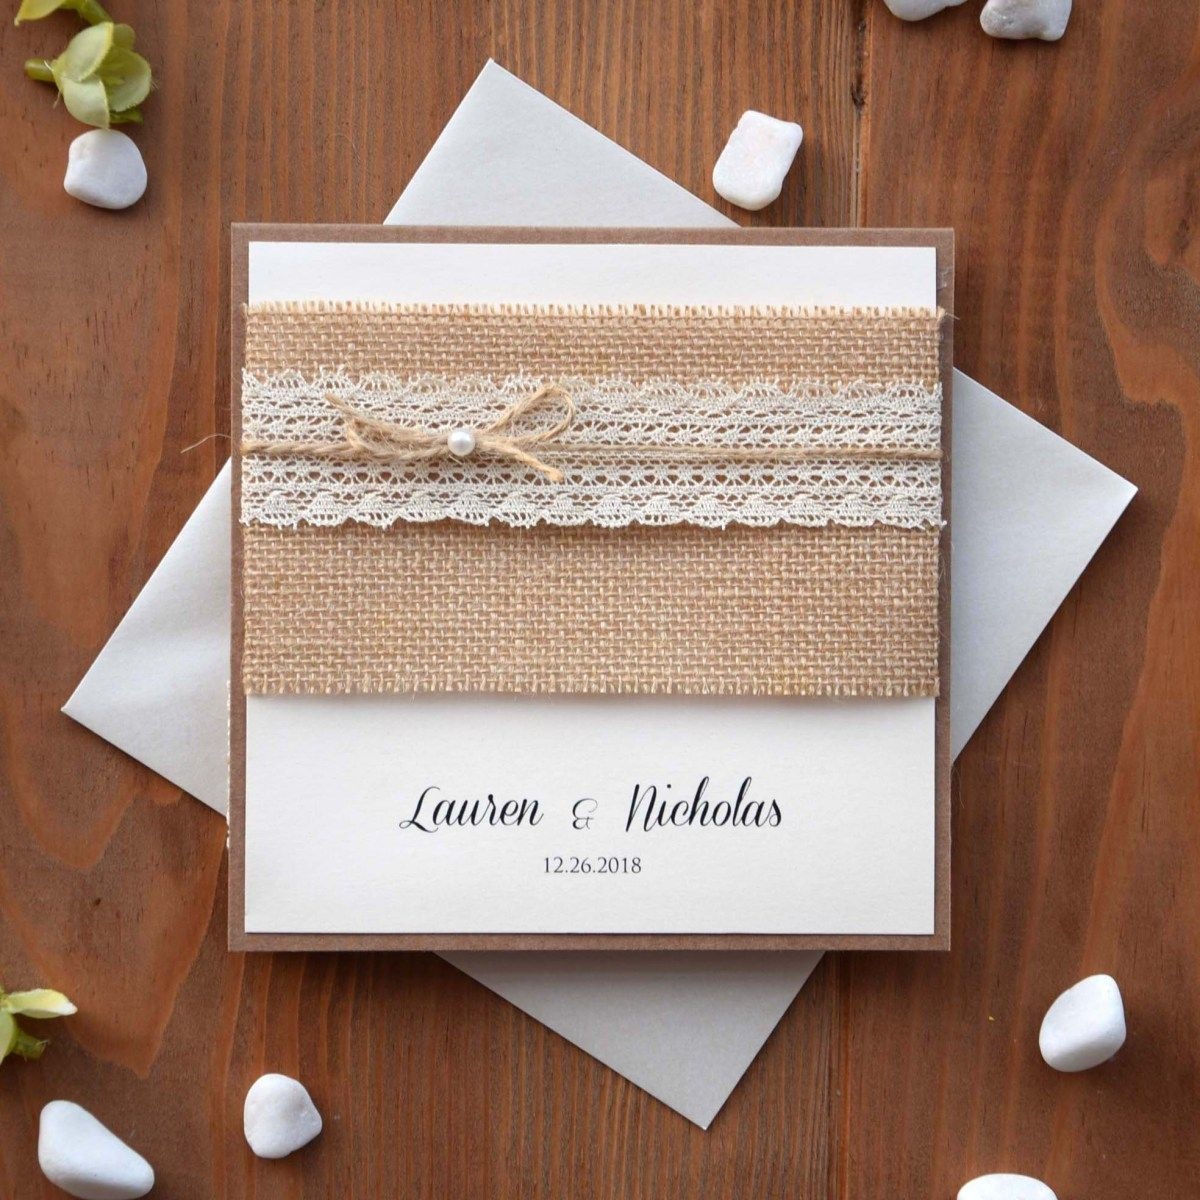 Burlap And Lace Wedding Invitations Discount Wedding Invitations Beach Wedding Invitations Budget Wedding Invitations